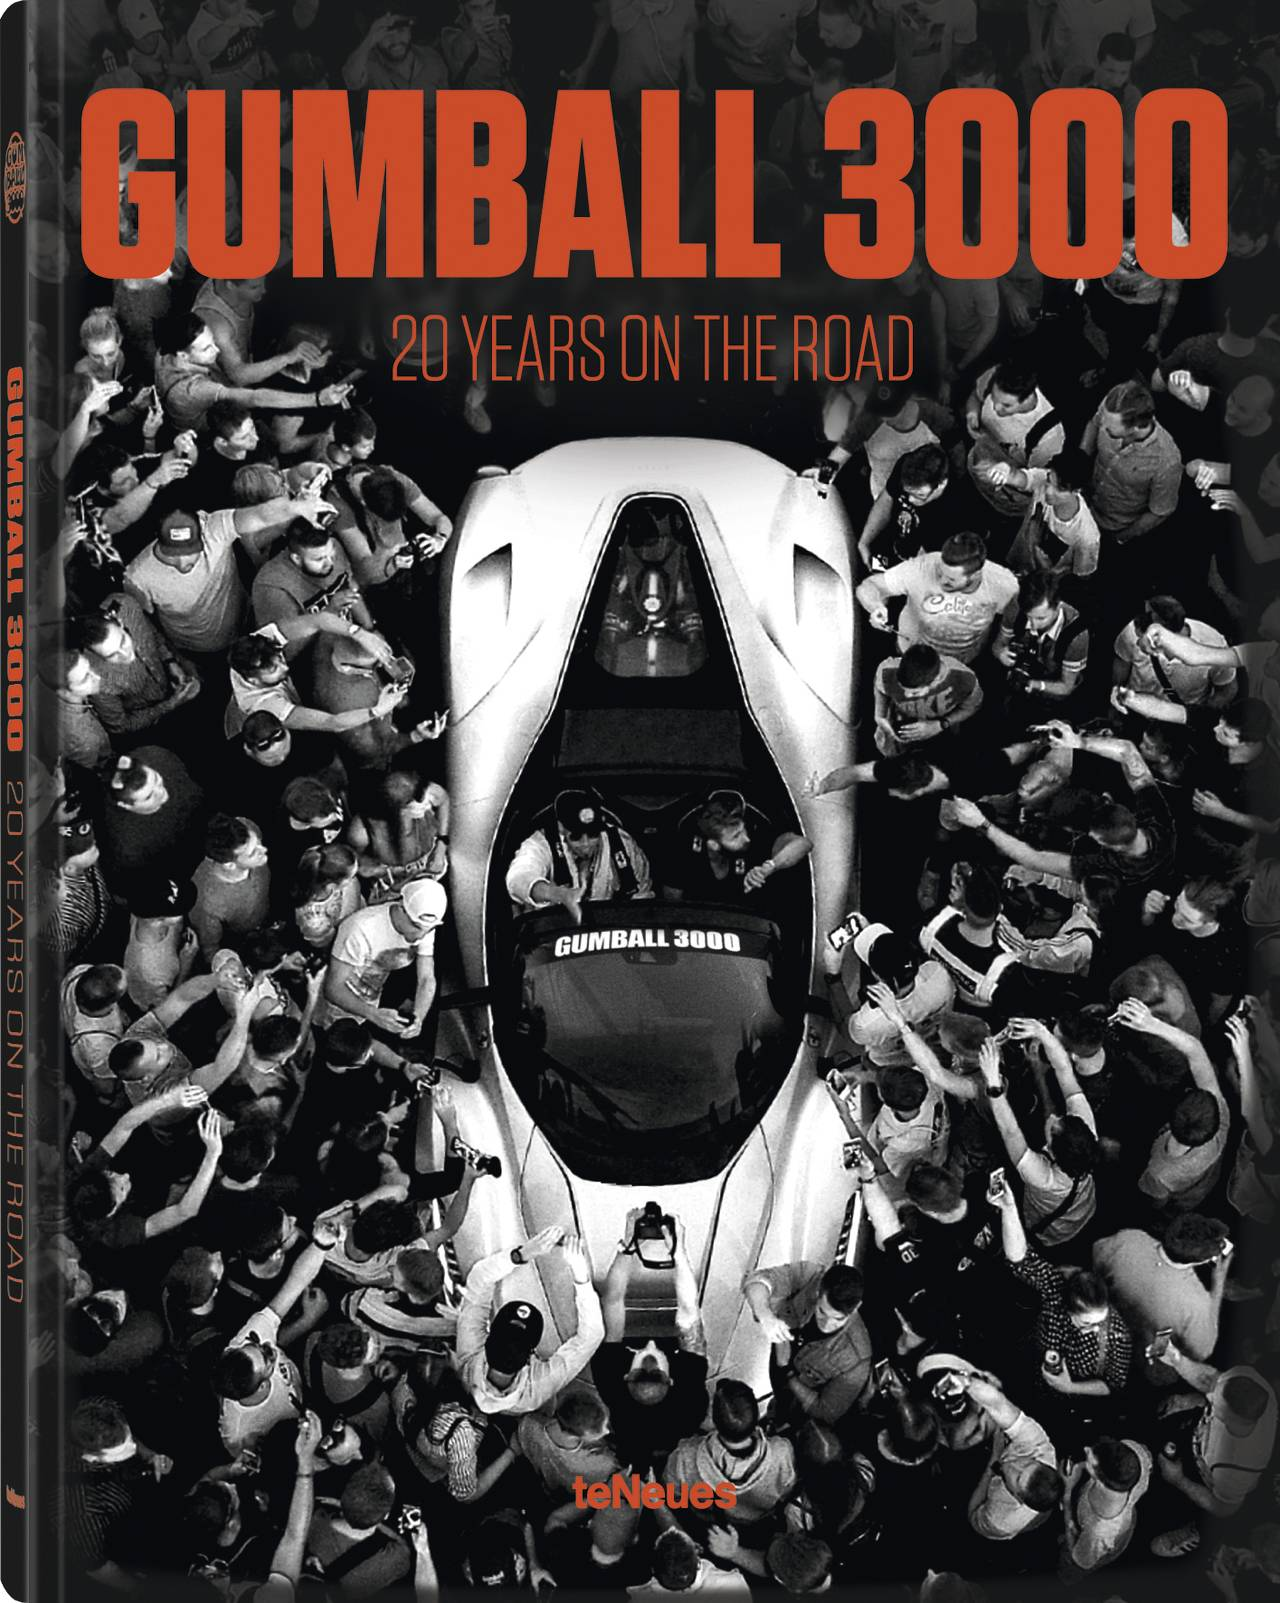 © Small Hardcover Edition Gumball 3000 - 20 Years on the Road, to be published by teNeues in December 2018, www.teneues.com,  Photo © Sabin Stanescu